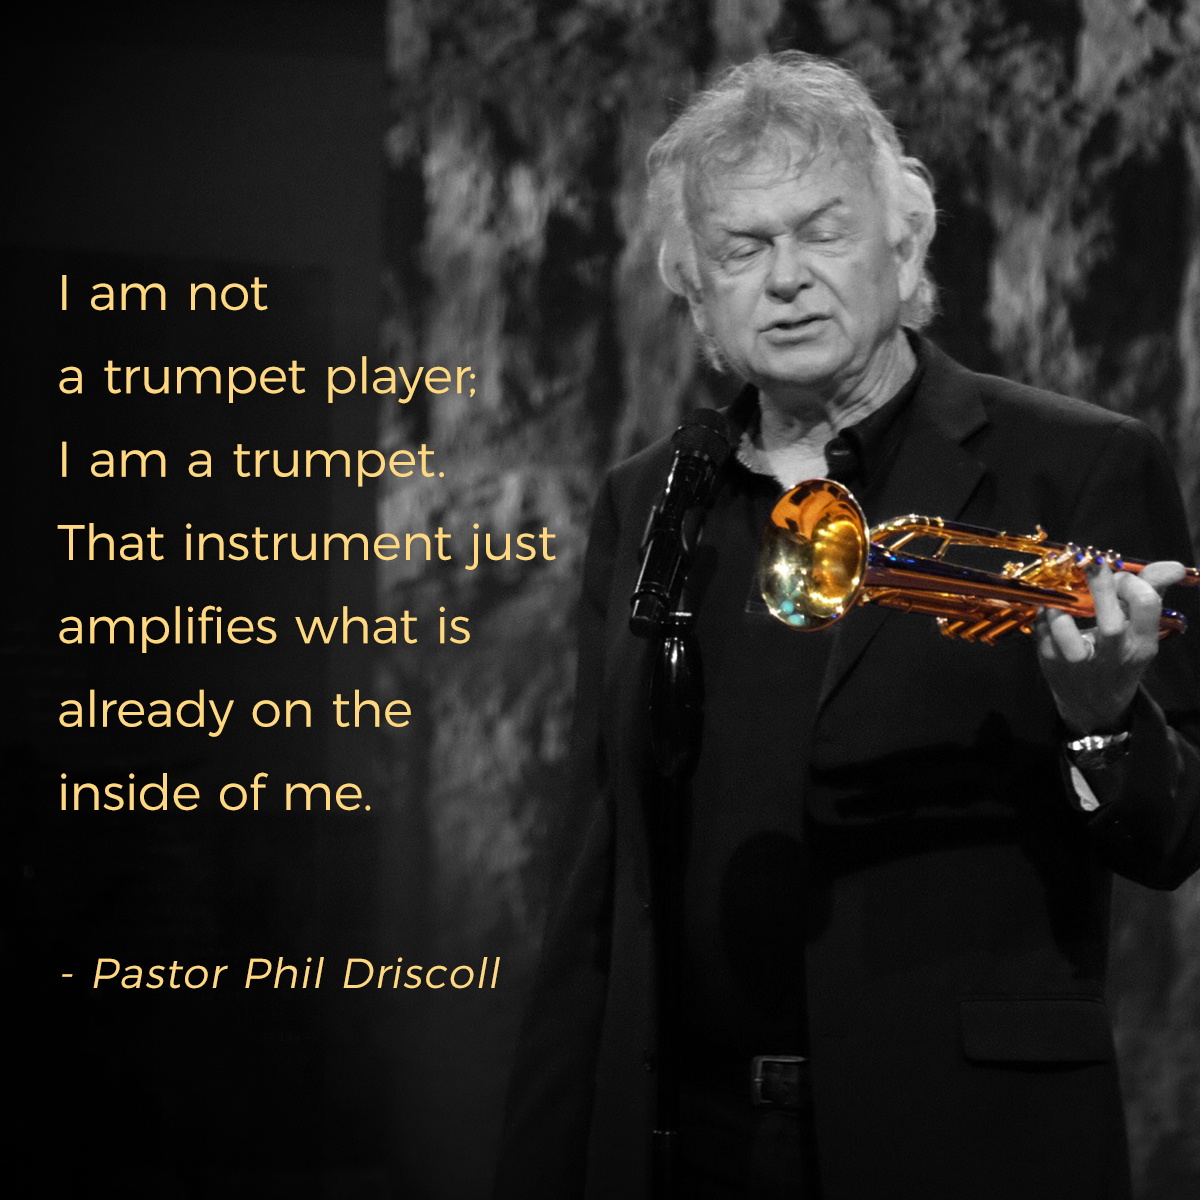 """I am not a trumpet player; I am a trumpet. That instrument just amplifies what is already on the inside of me."" – Pastor Phil Driscoll"